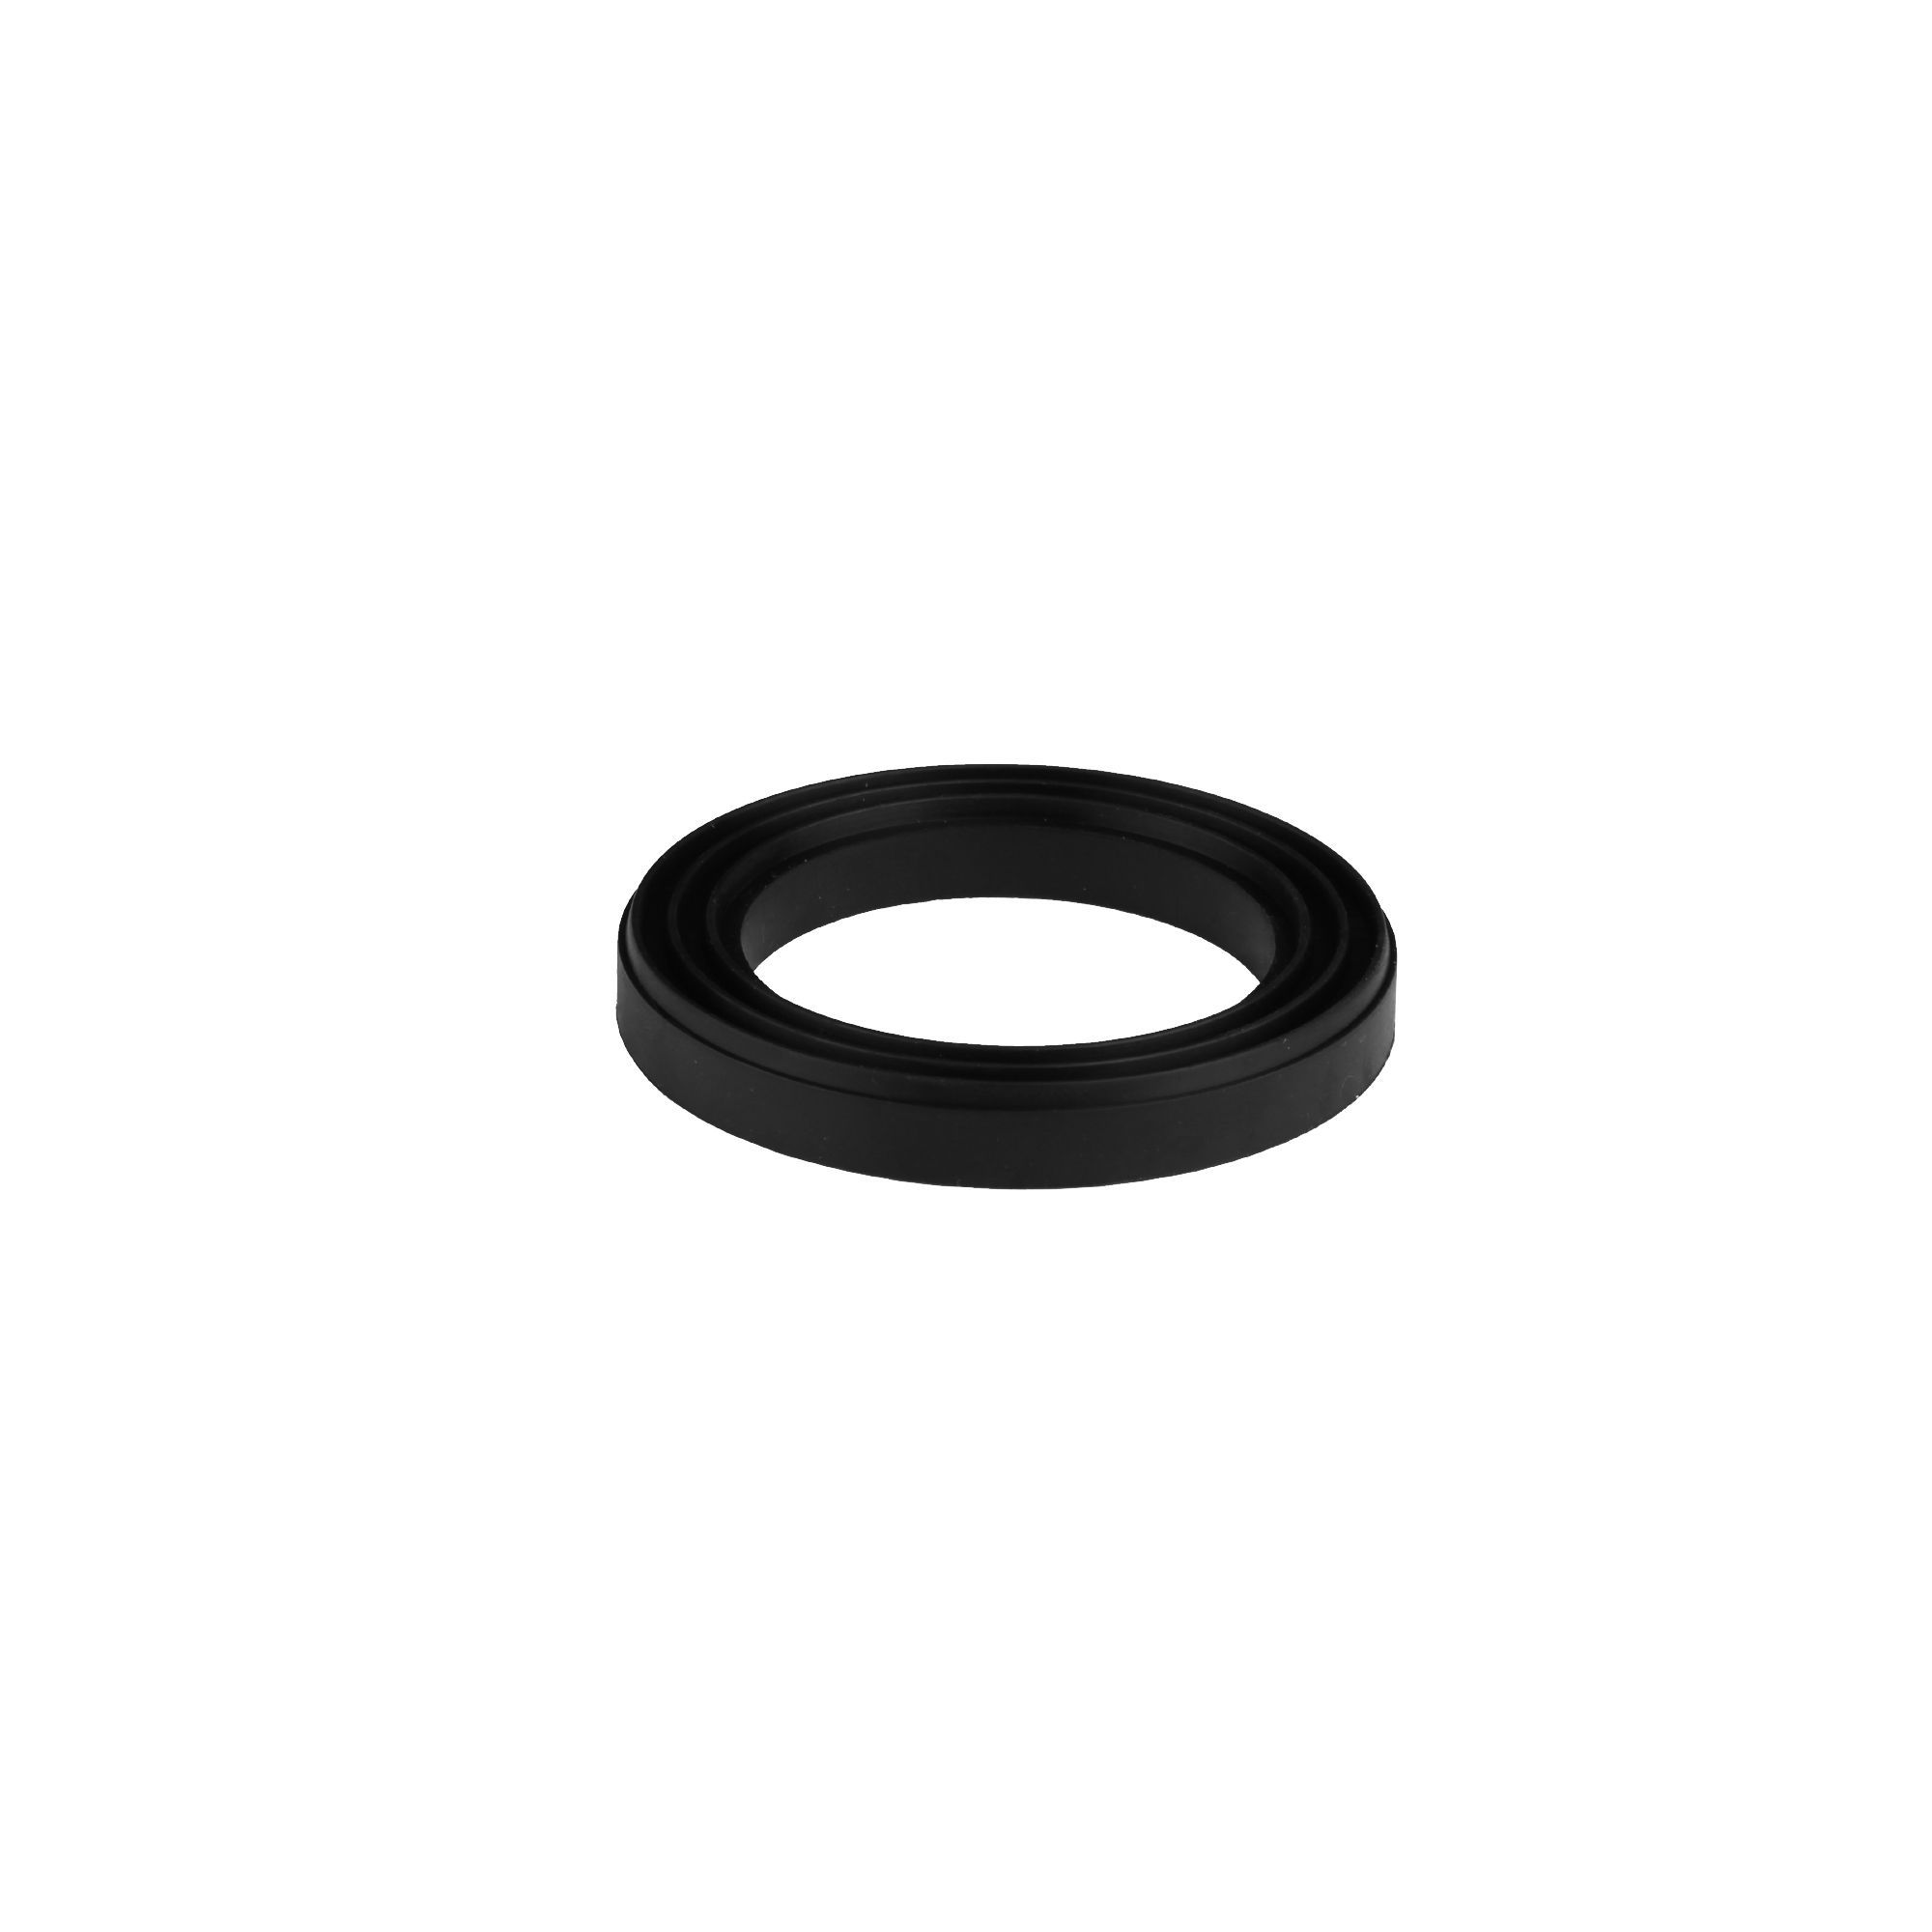 Diall Black Sbr Washers For Dual Flush Valve Set Of 1